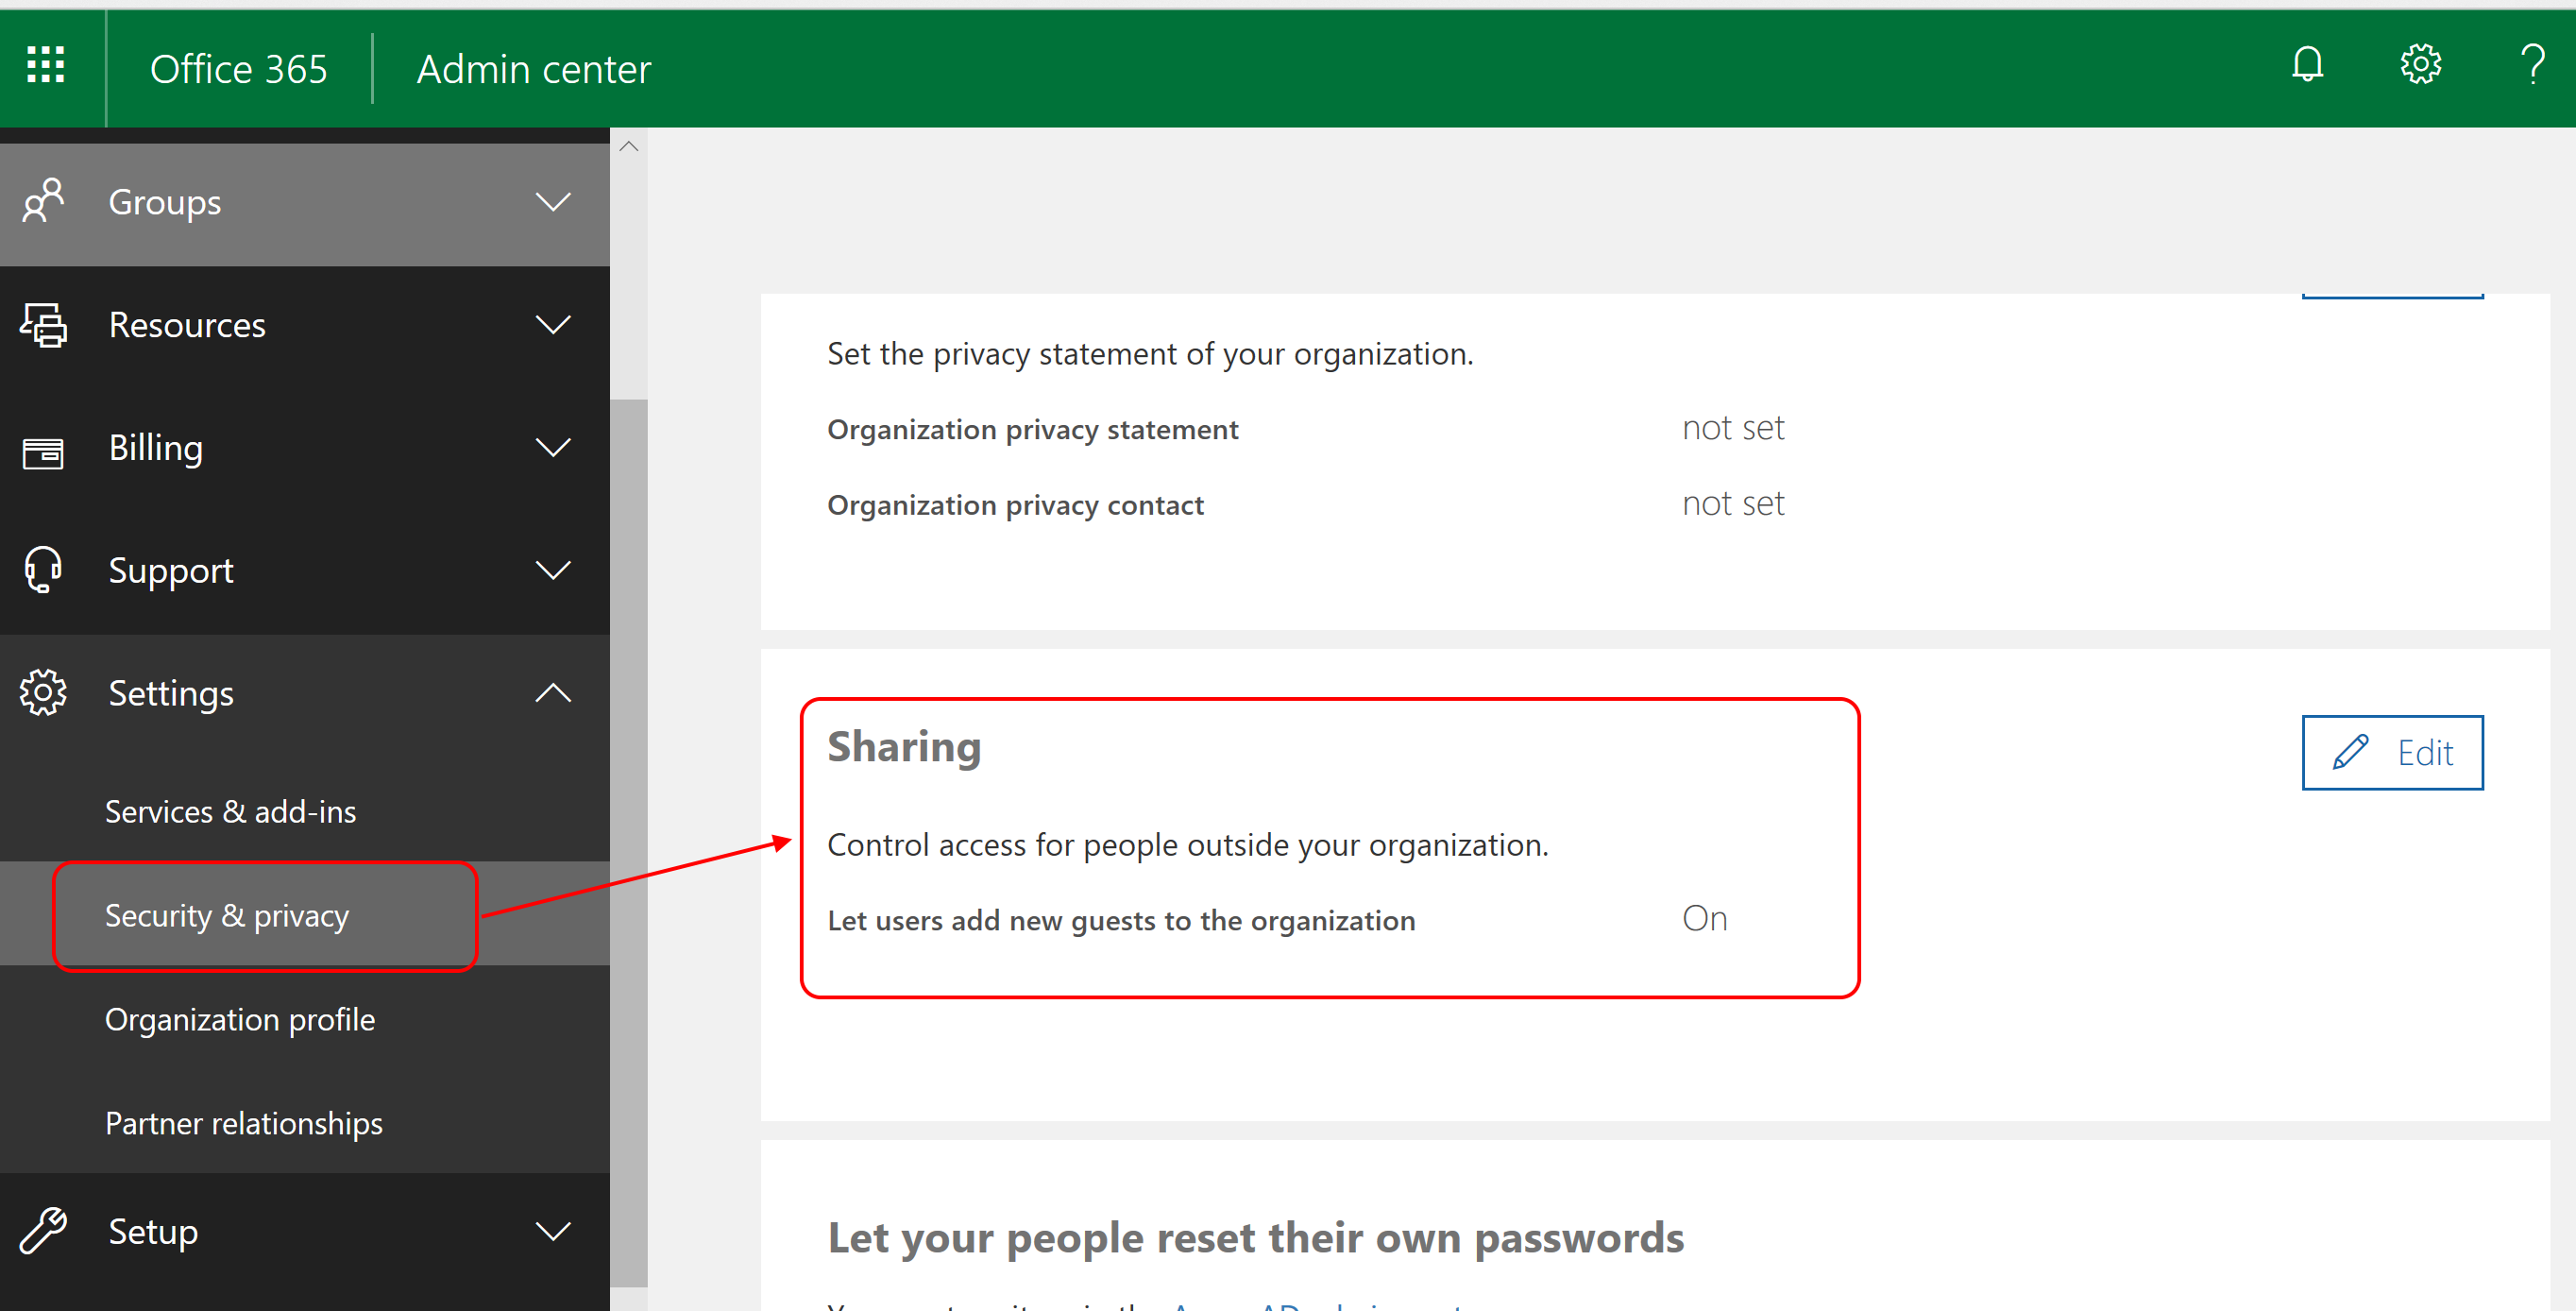 PBI O365 Admin Center - Disable Sharing